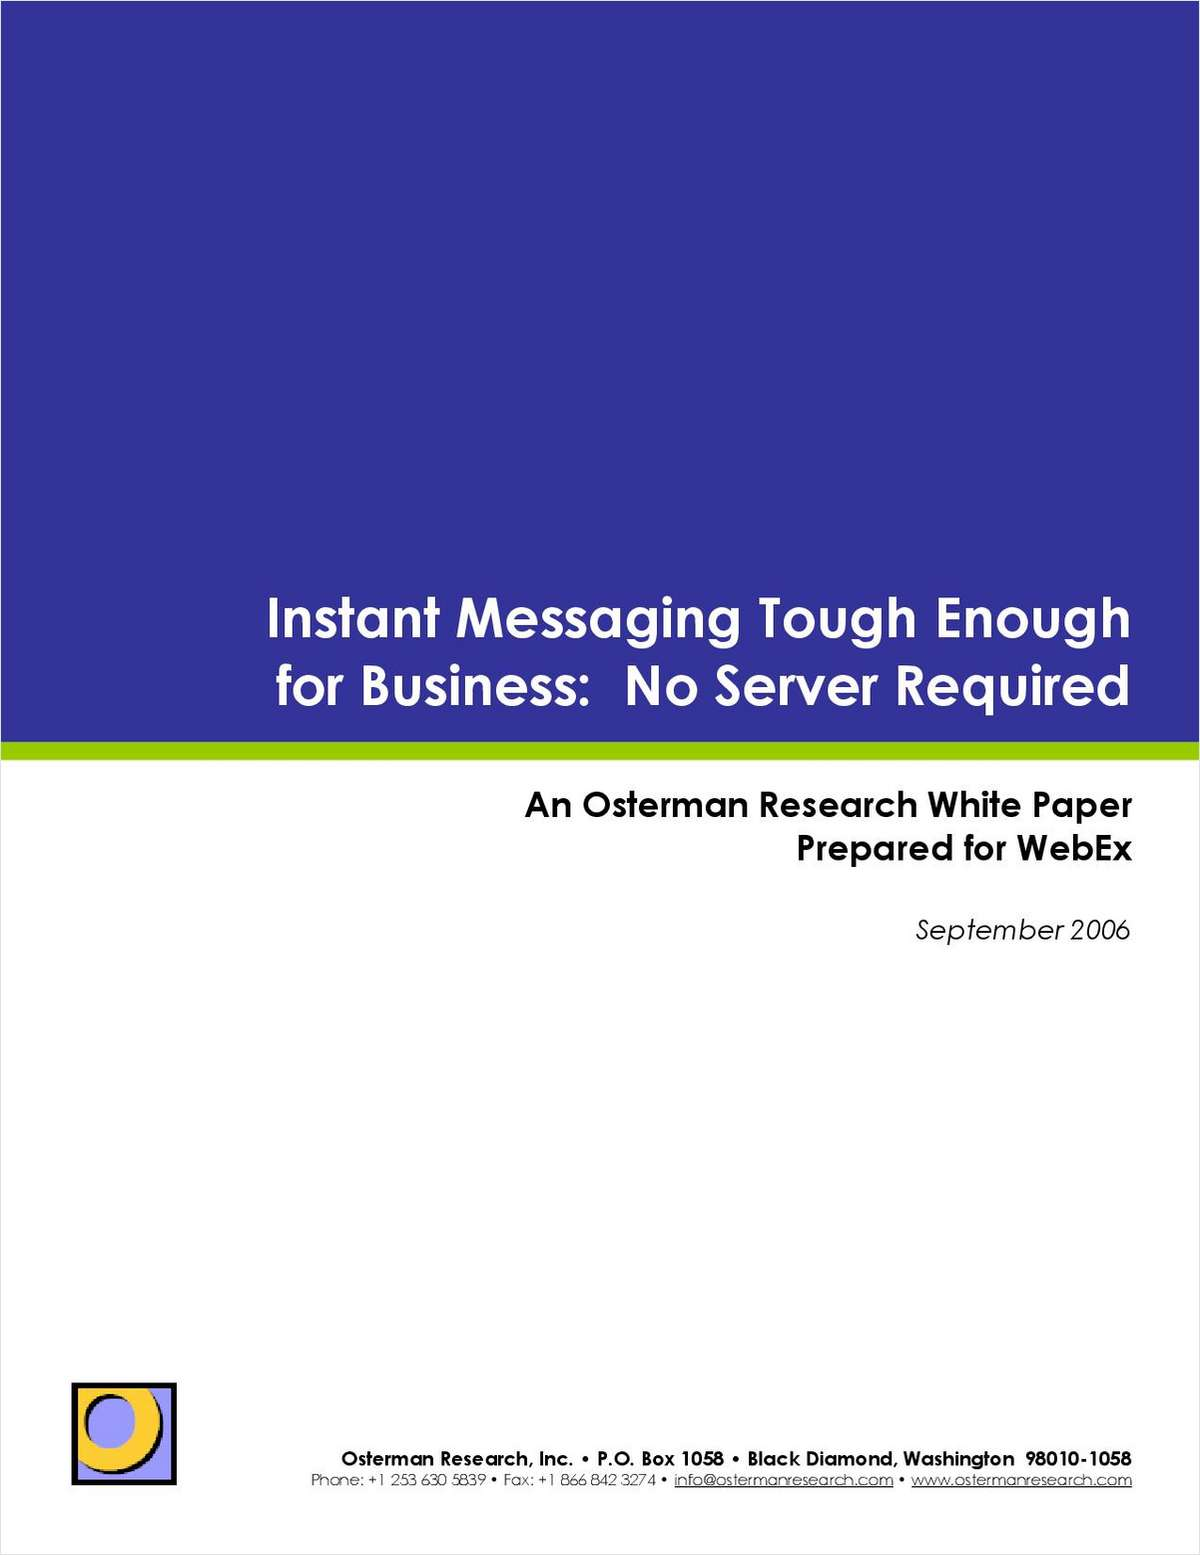 Instant Messaging Tough Enough for Business: No Server Required